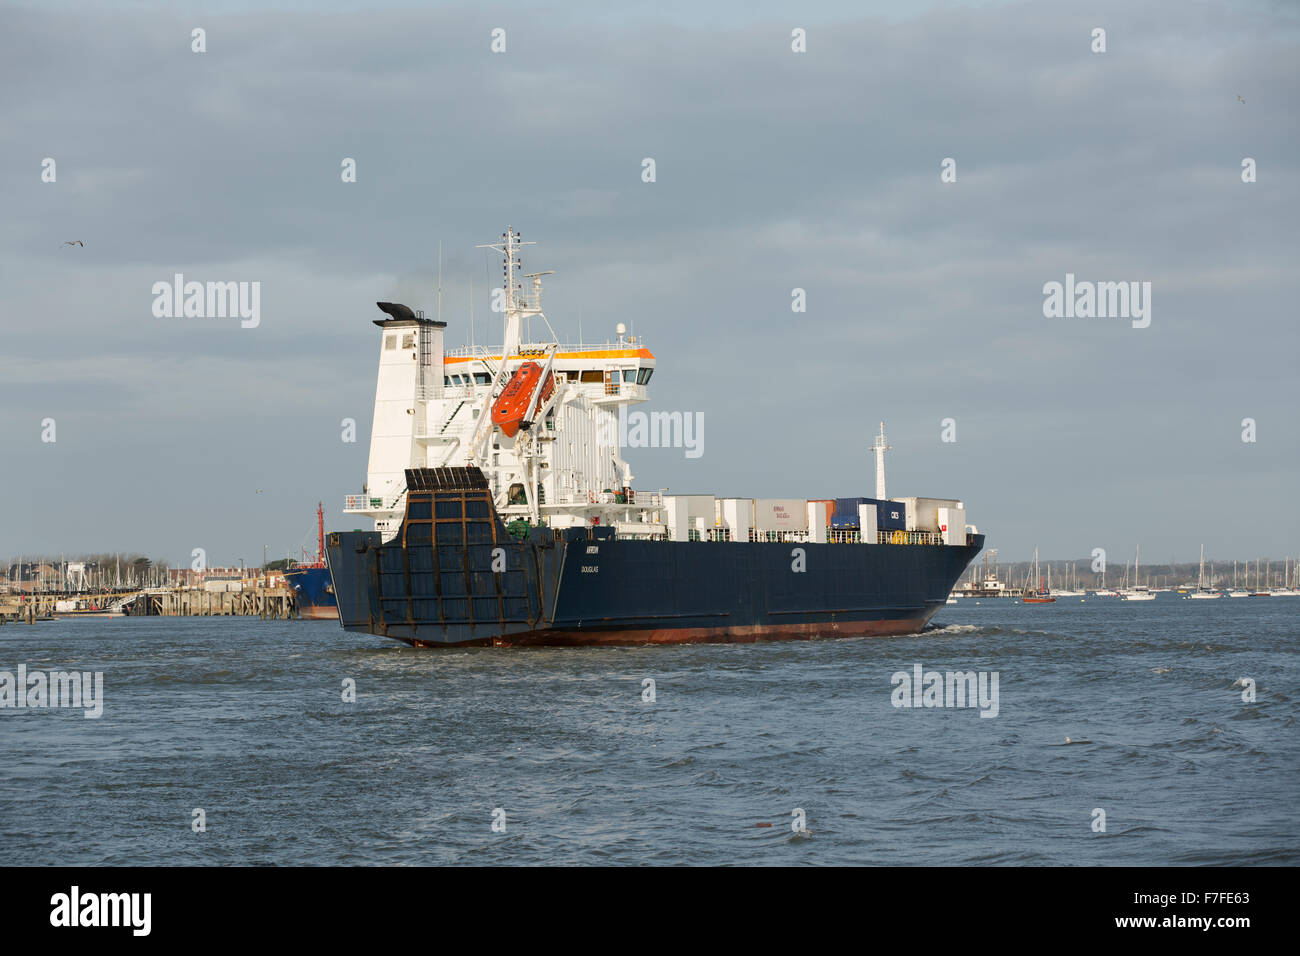 MS Arrow entering Portsmouth harbour. Fully laden with containers and heading for the commercial port to unload. - Stock Image